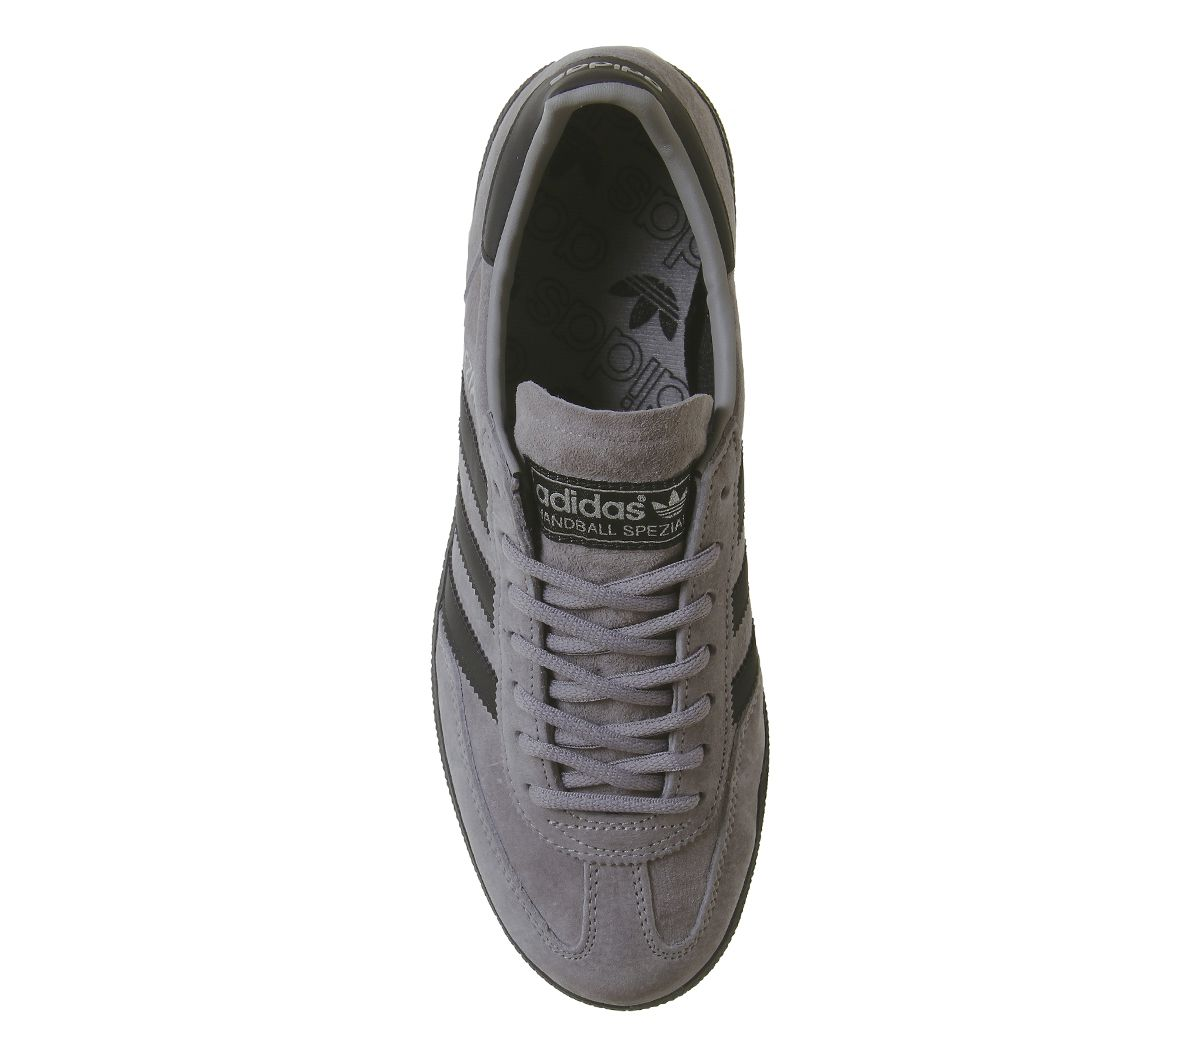 Adidas-Handball-Spezial-Trainers-Solid-Grey-Core-Black-Silver-Exclusive-Trainers thumbnail 16